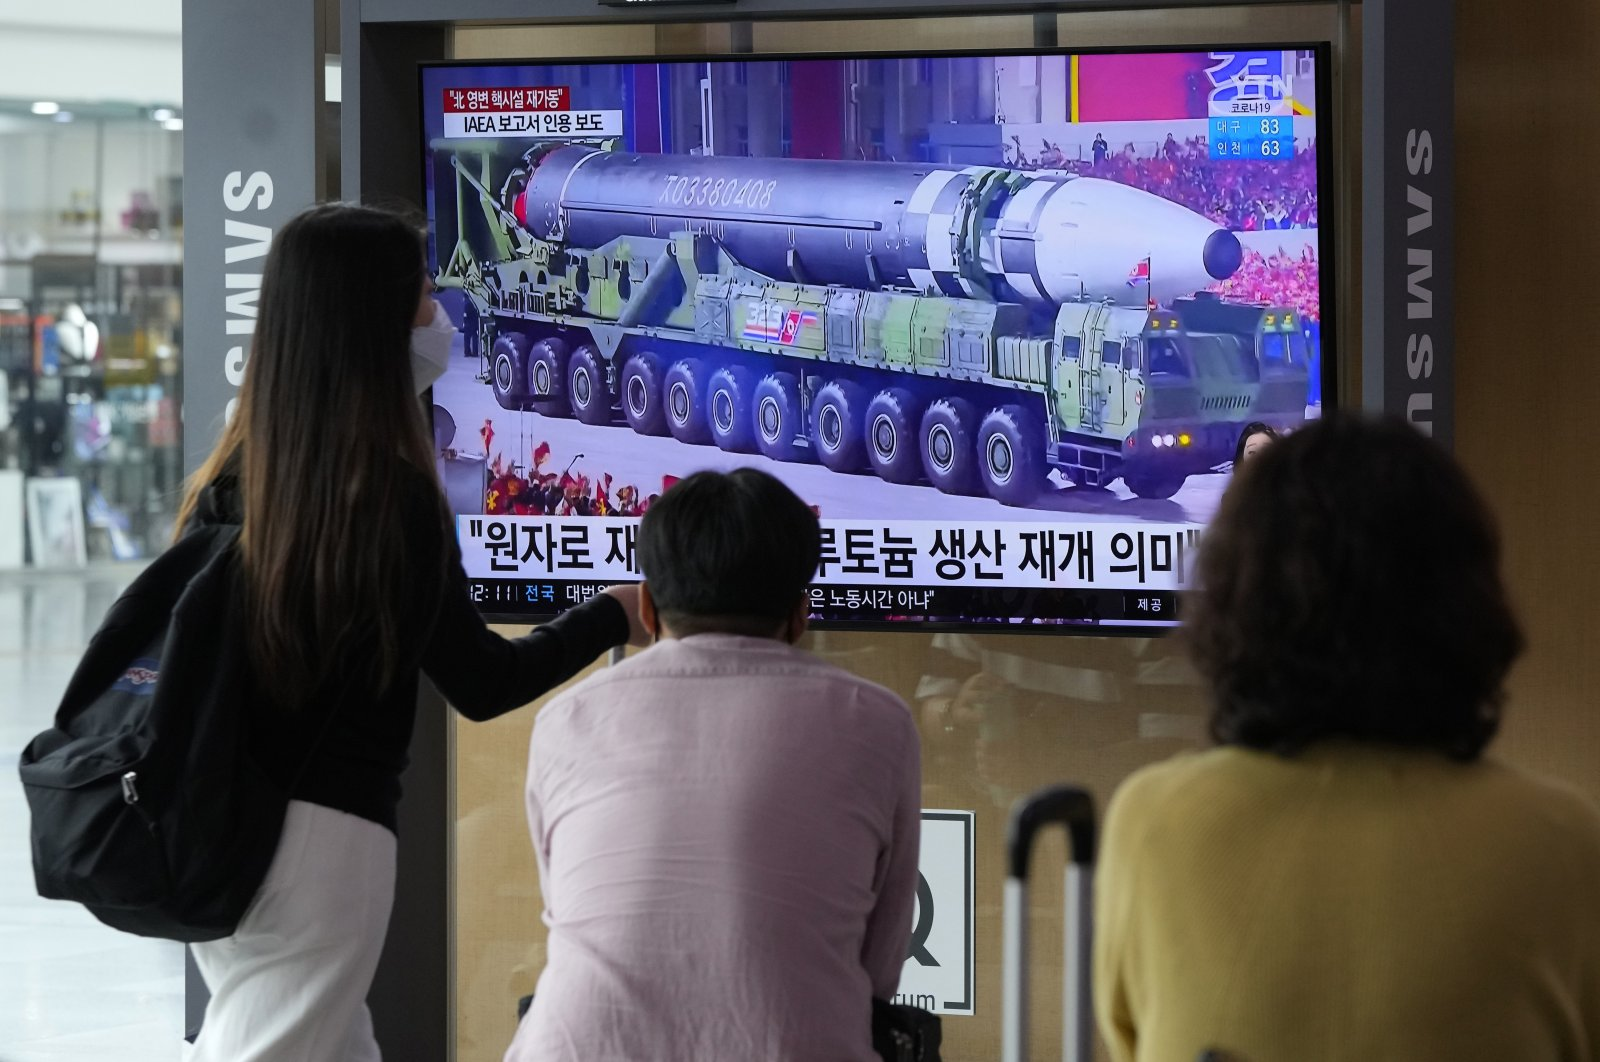 People watch a TV screen showing a file image of a North Korean missile in a military parade during a news program at the Seoul Railway Station in Seoul, South Korea, Aug. 30, 2021. (AP Photo)